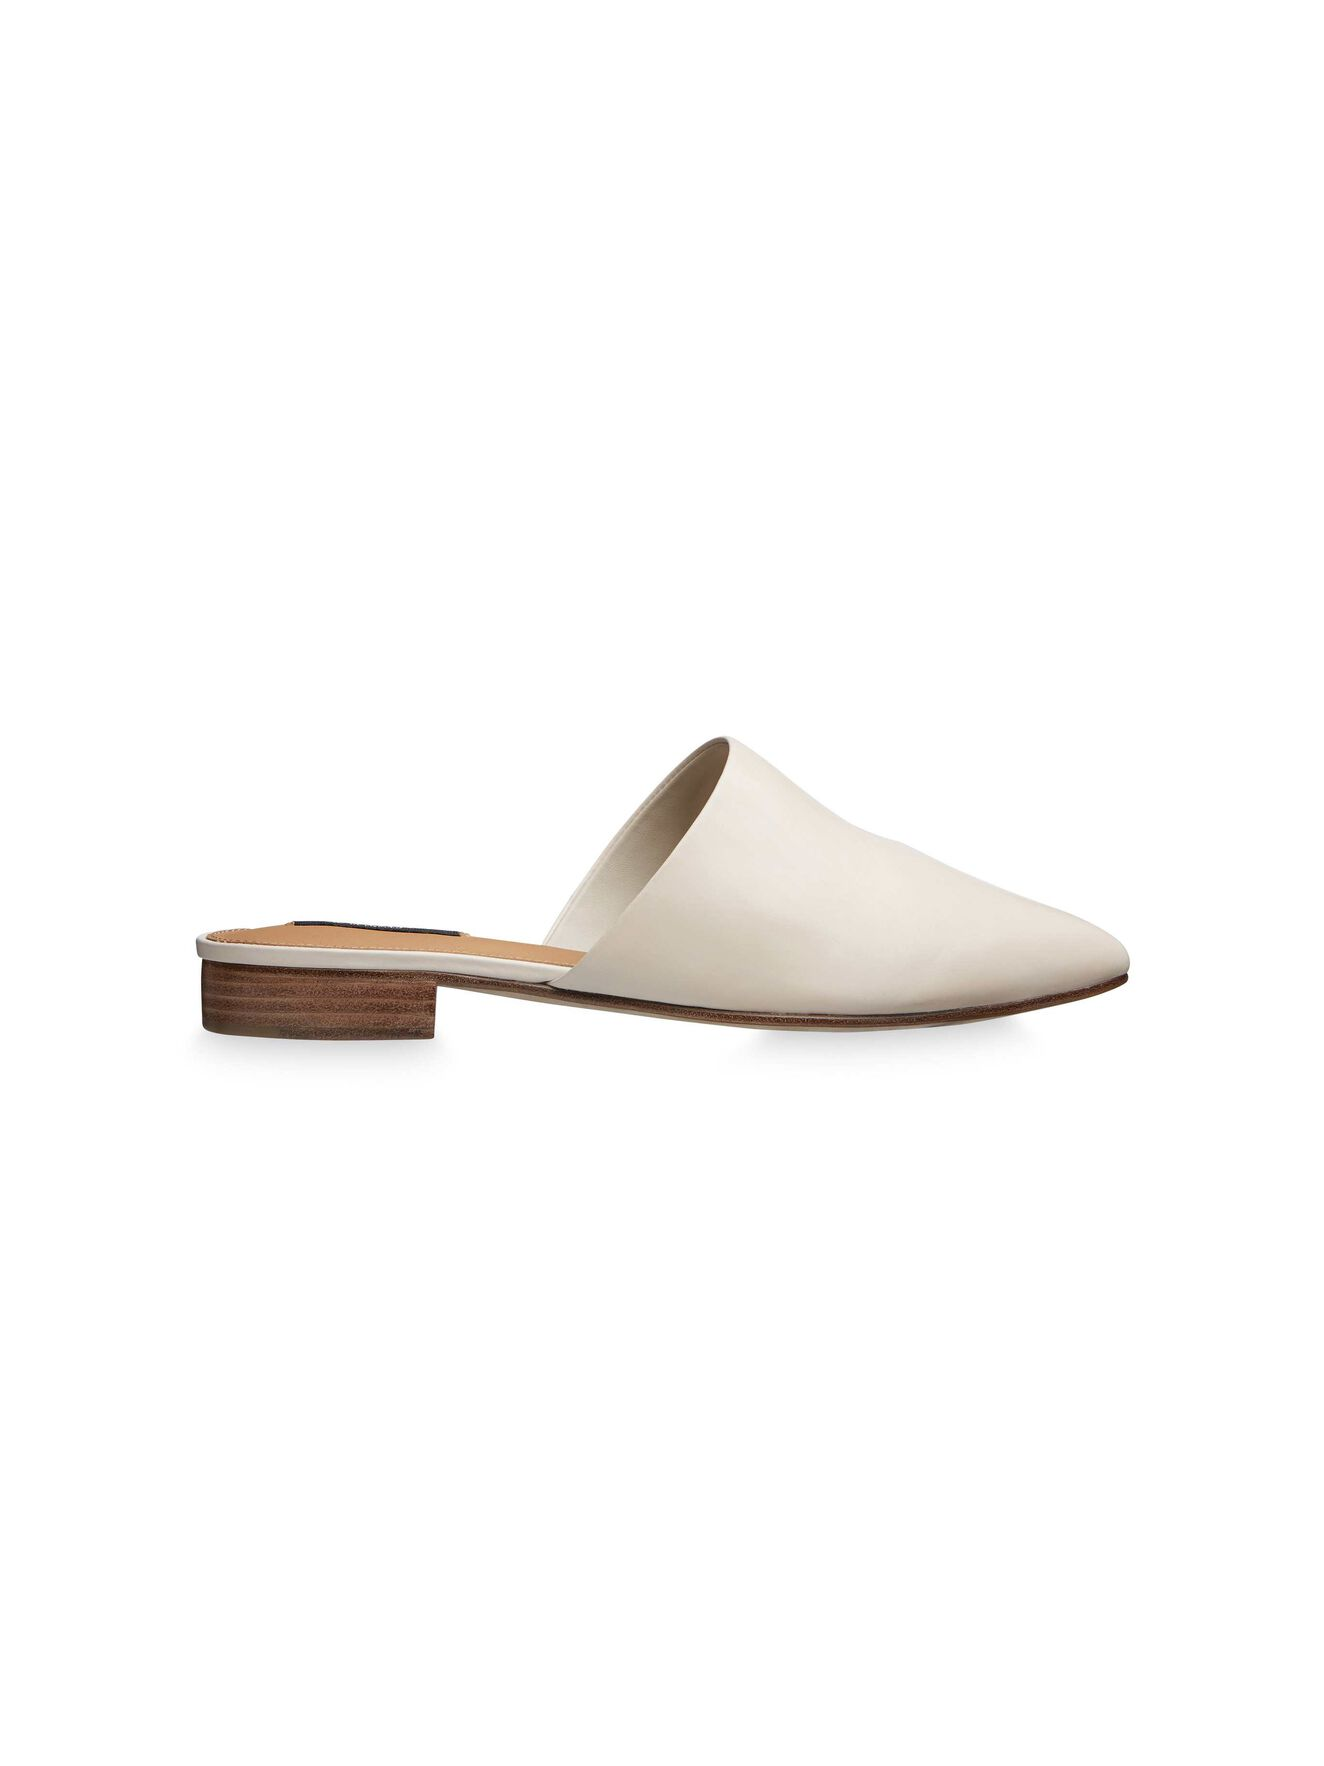 Beccles Sandal in De la Cream from Tiger of Sweden